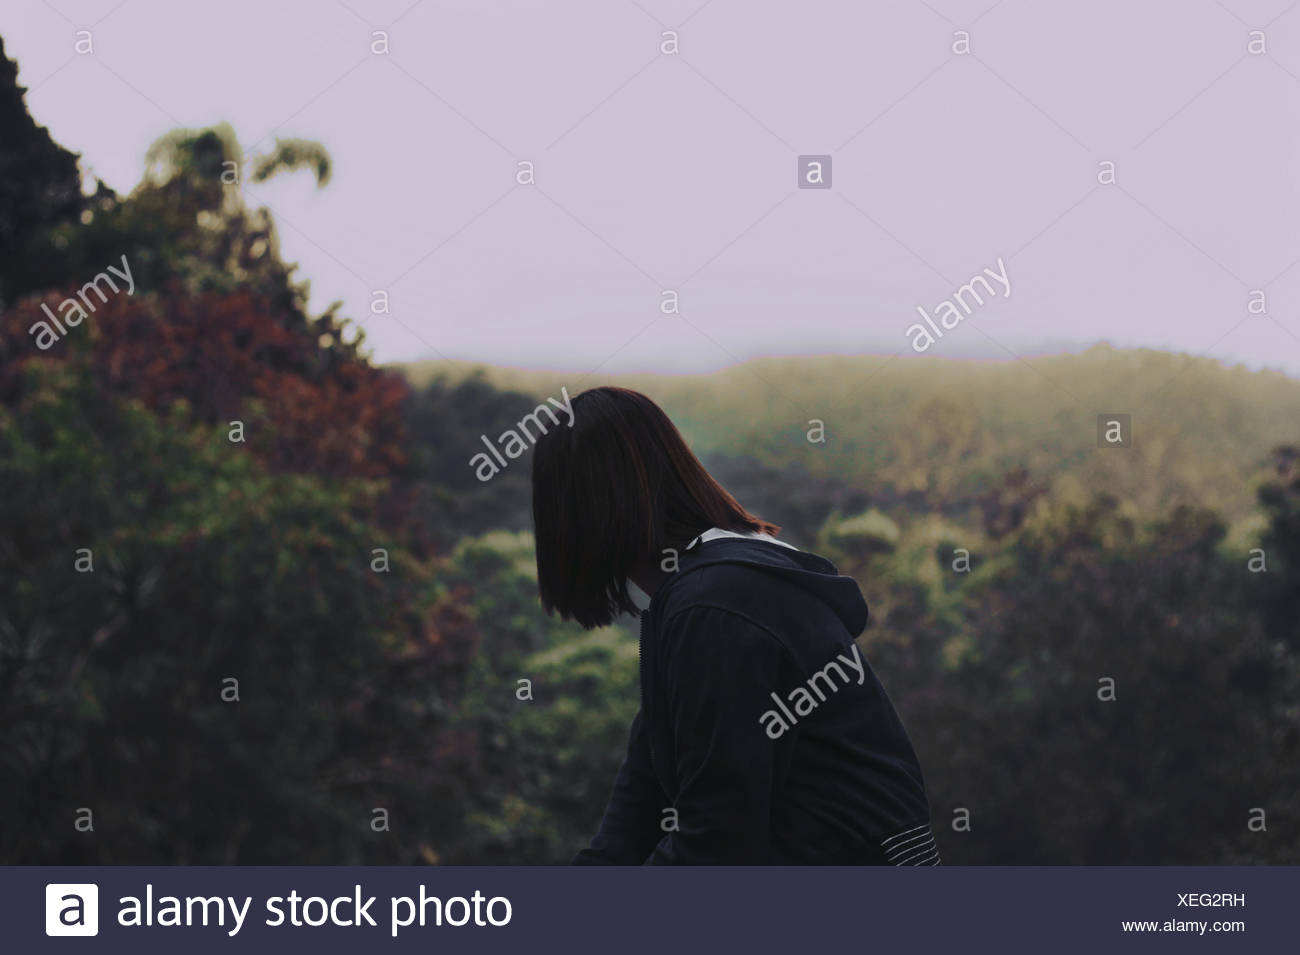 Woman Looking Away In Park - Stock Image